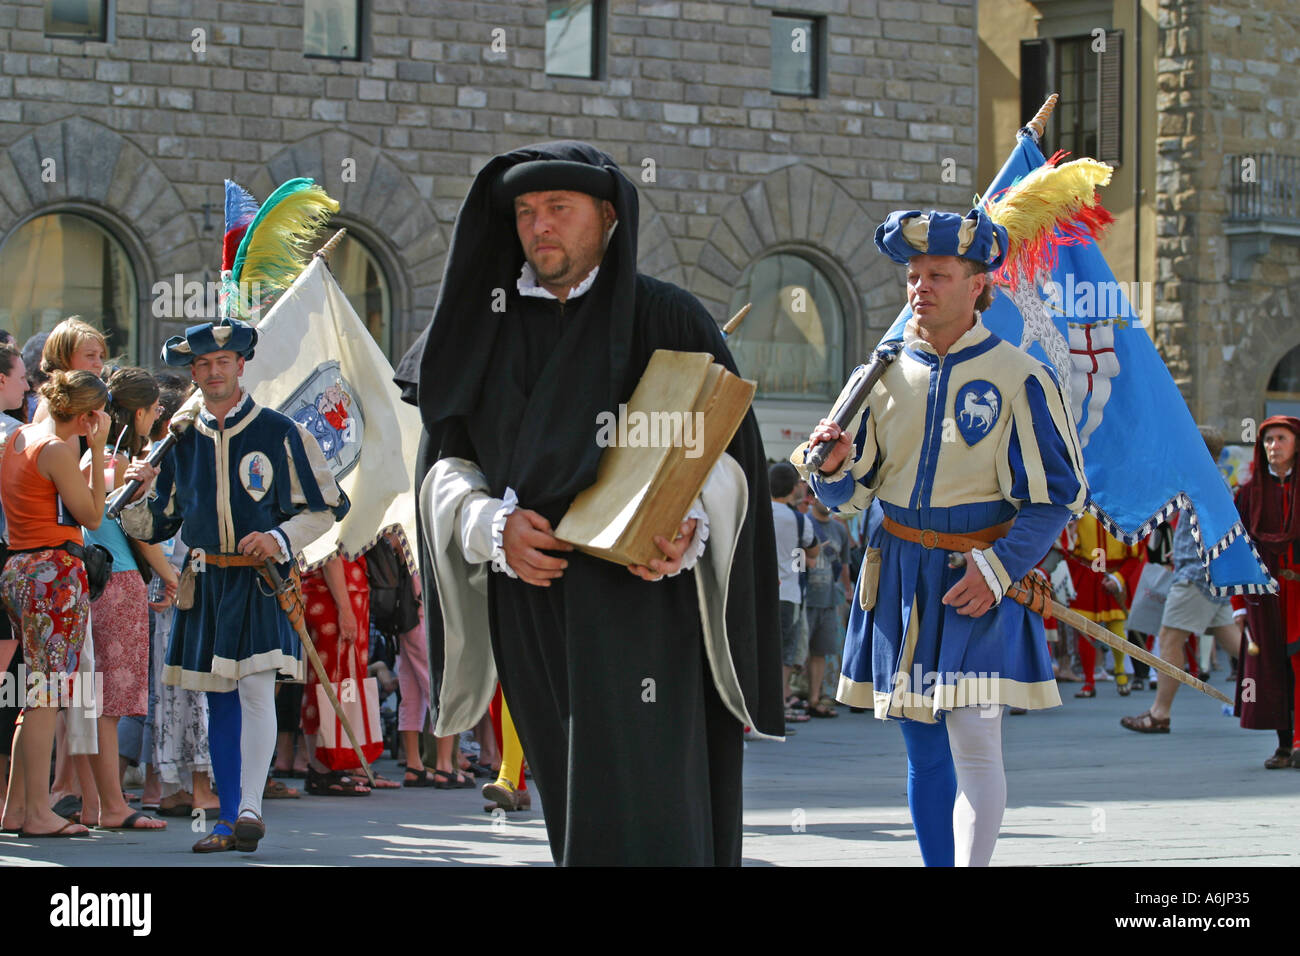 The  Costume  football game procession Florence Italy Stock Photo